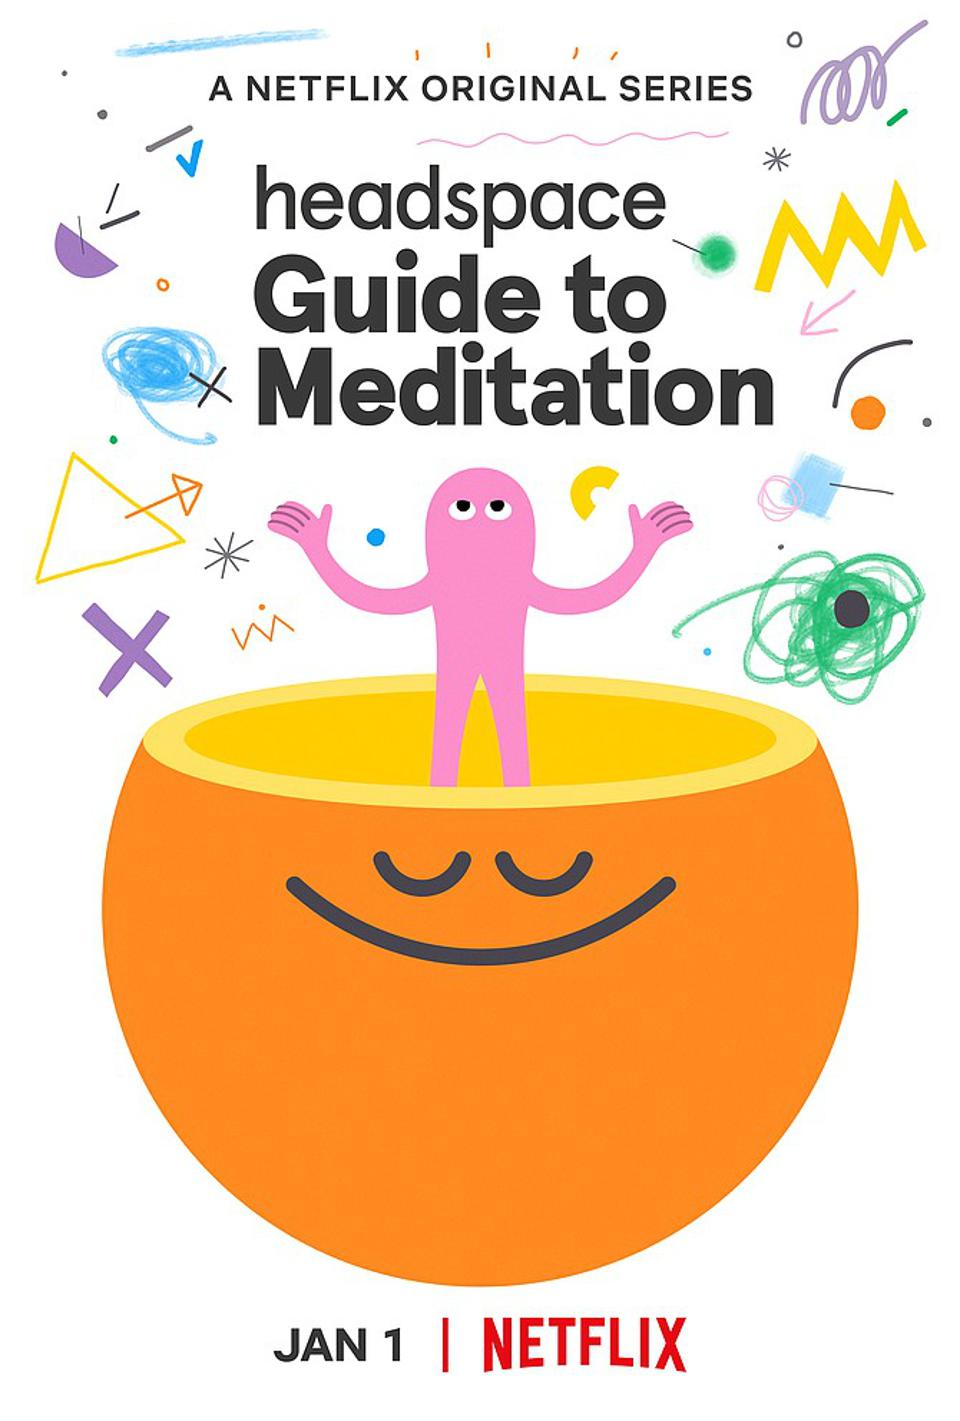 Headspace Guide to Meditation by Netflix